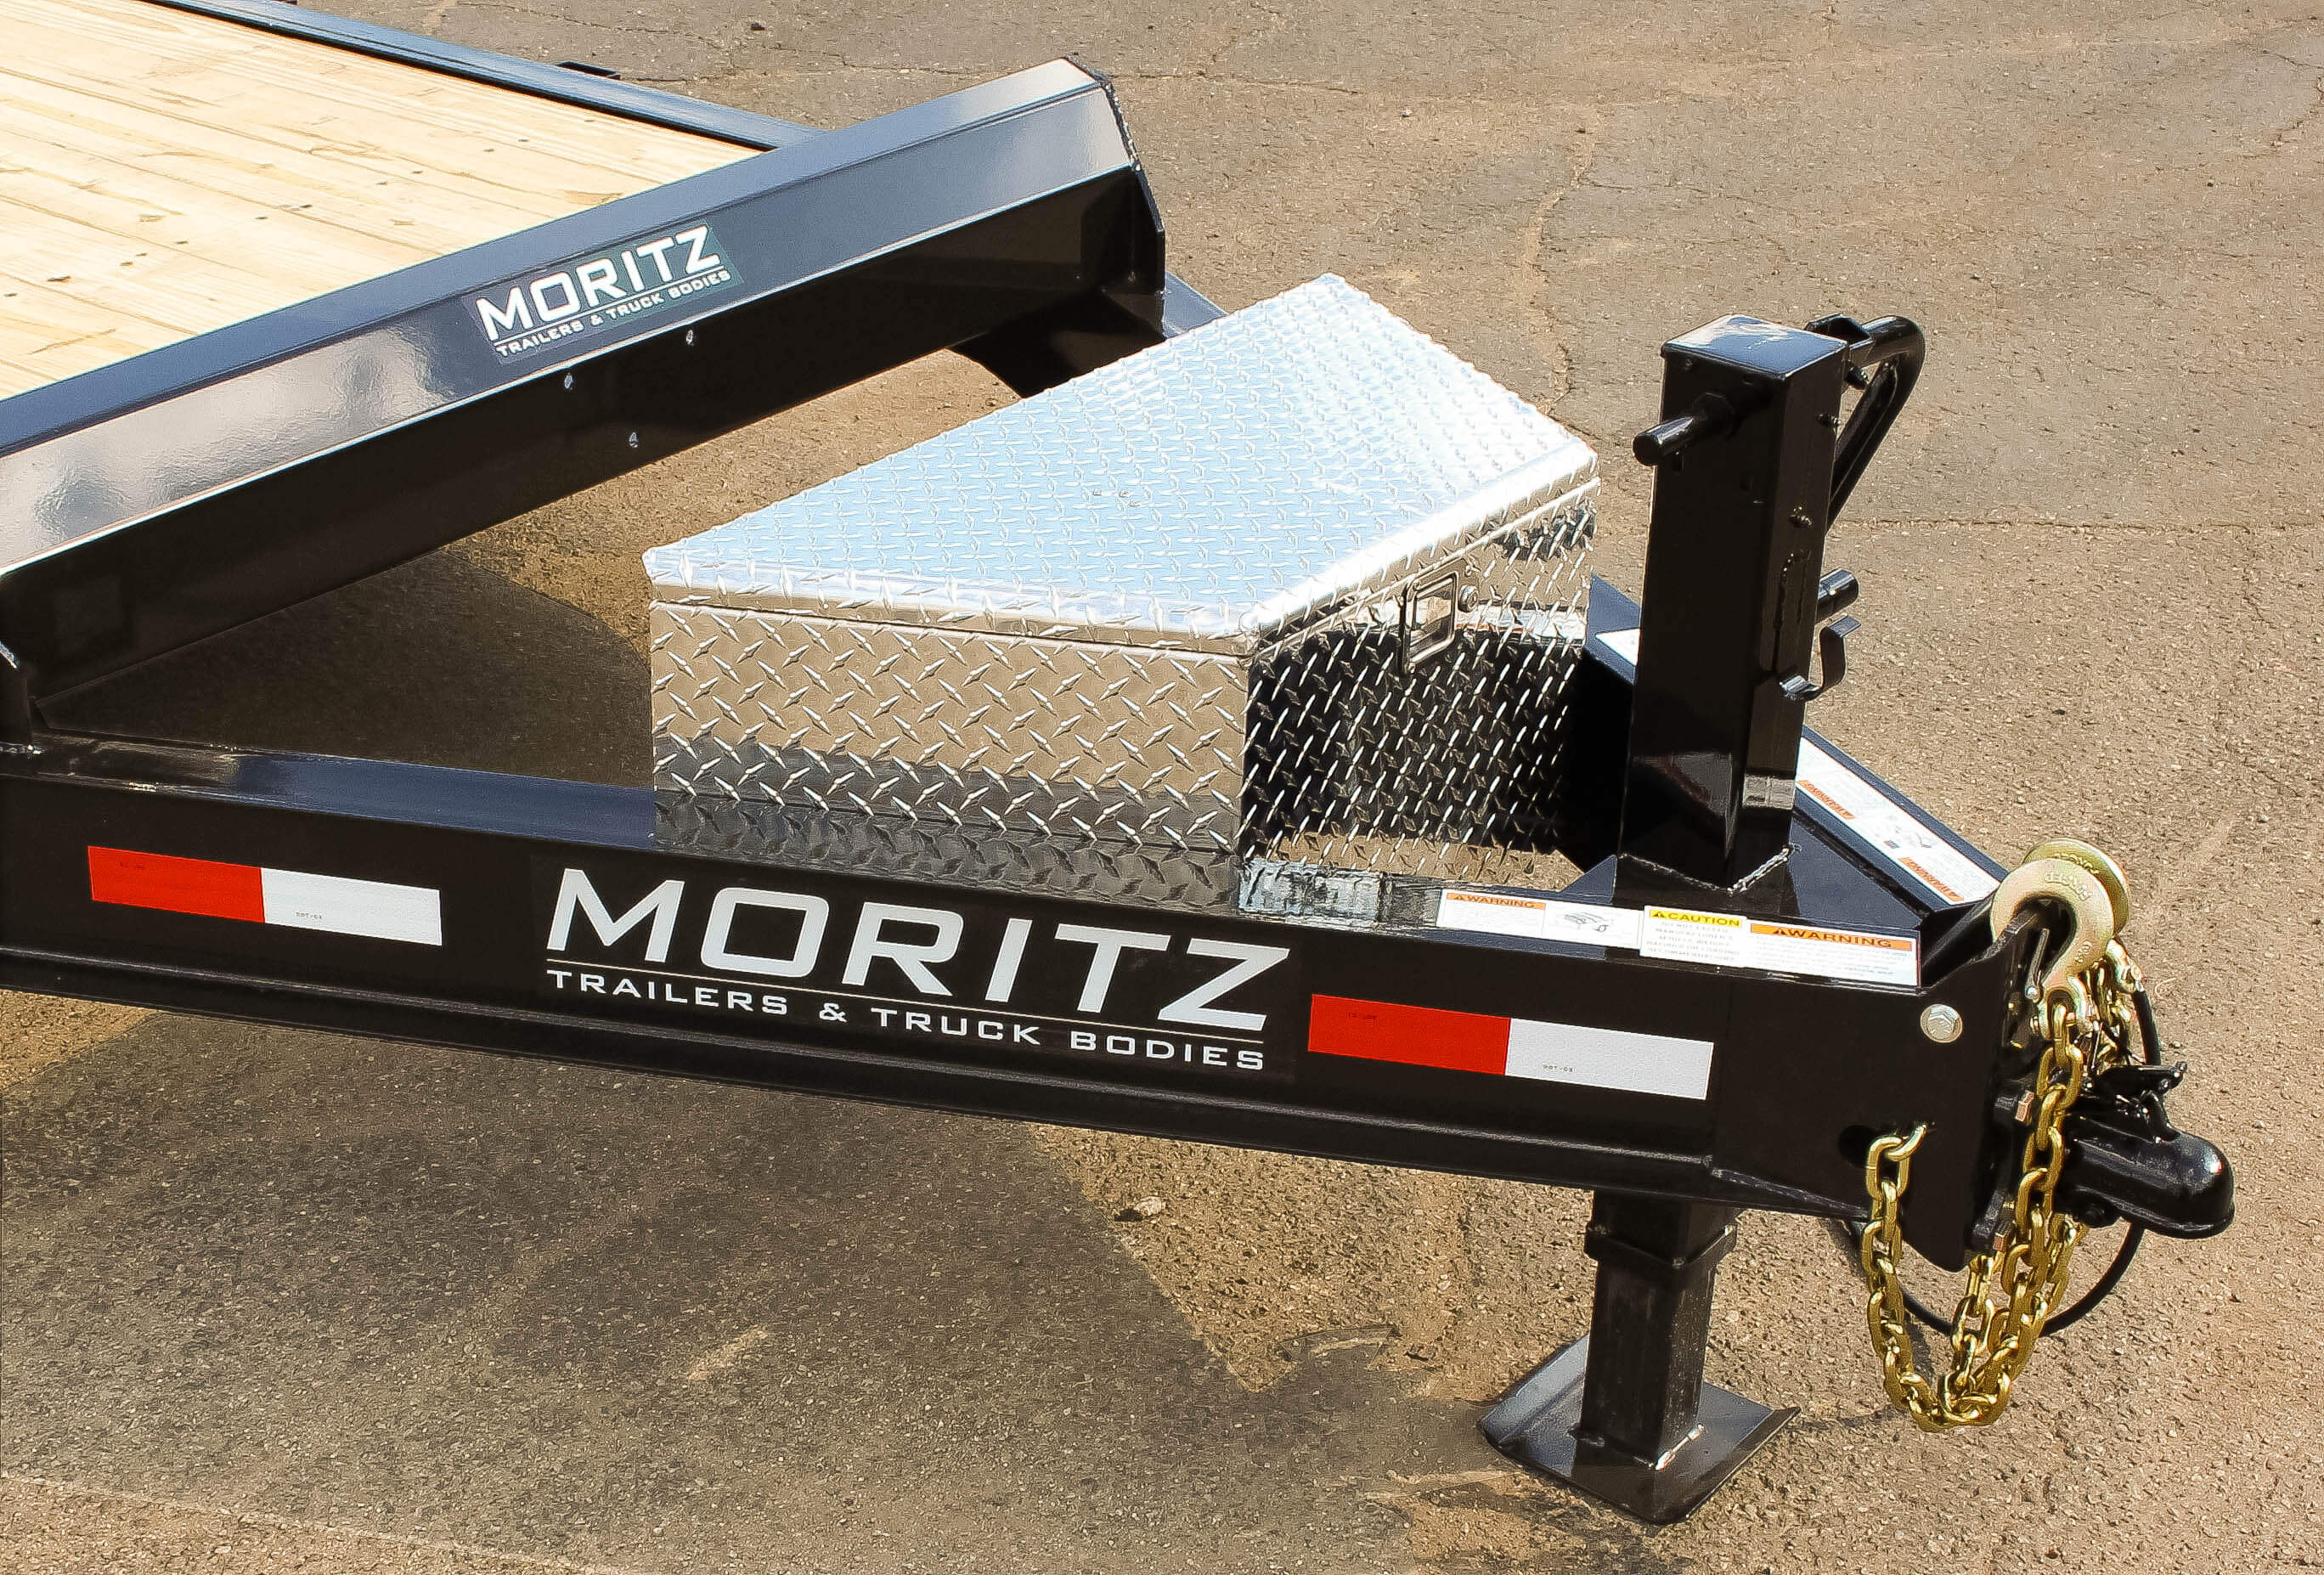 Moritz deck over trailer wiring diagram for a wire center elh gt series trailers moritz trailers truck bodies rh moritzinternational com asfbconference2016 Image collections